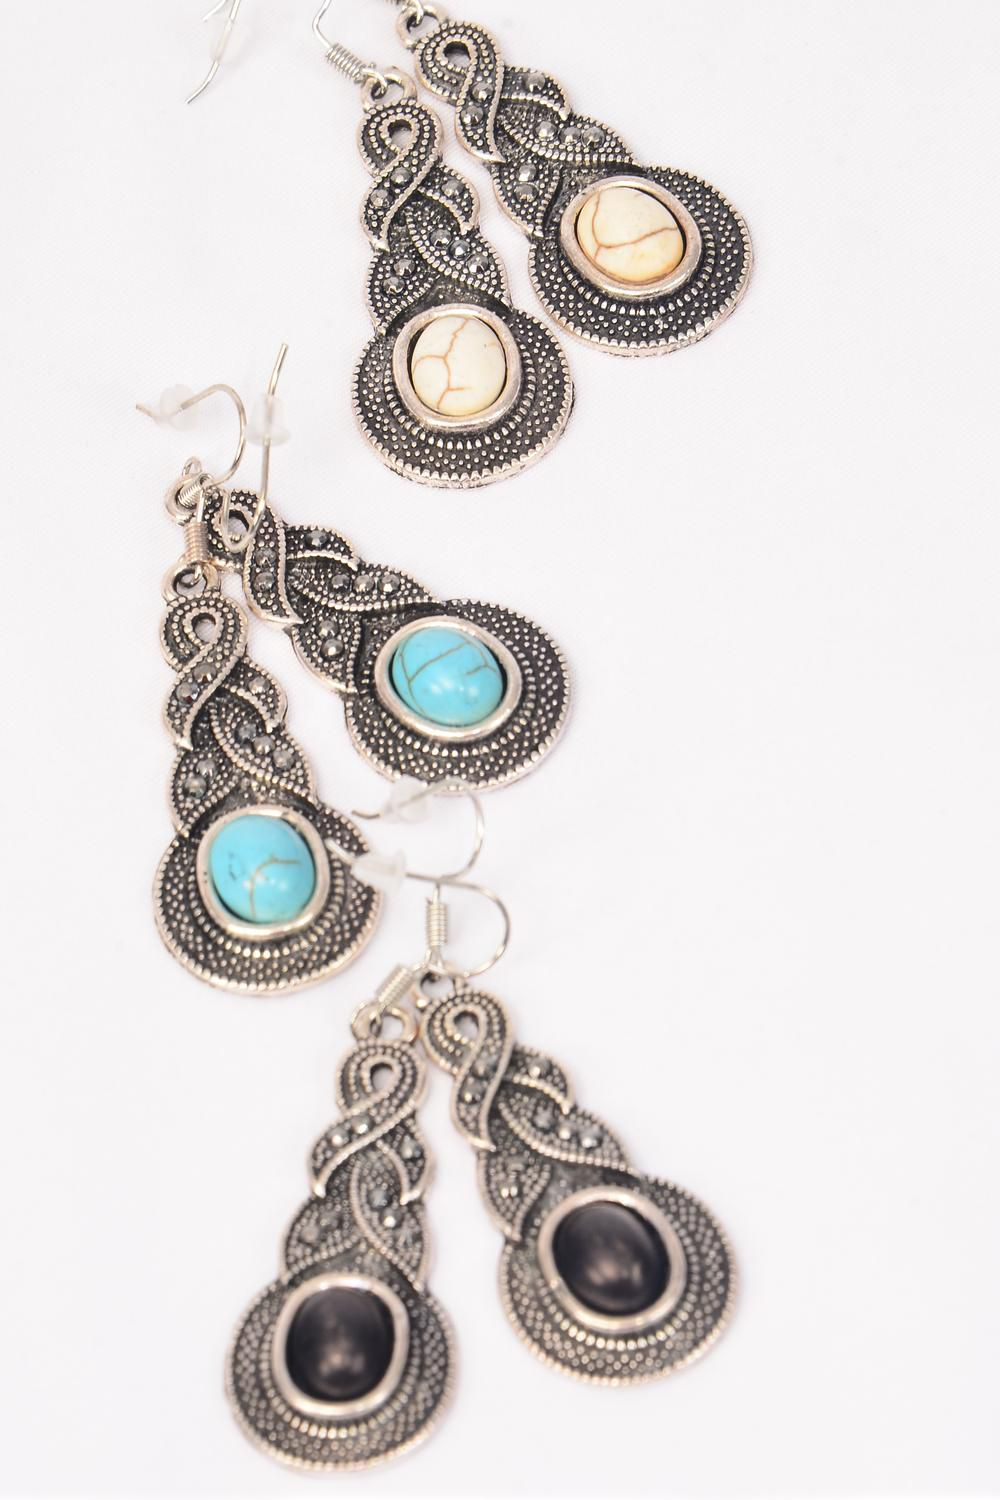 "Earrings Metal Antique Marcasite Look Semiprecious Stone/DZ **Fish Hook** Size-1.75""x 0.75"" Wide,4 Black,4 Ivory,4 Turquoise Asst,Earring Card & OPP Bag & UPC Code -"